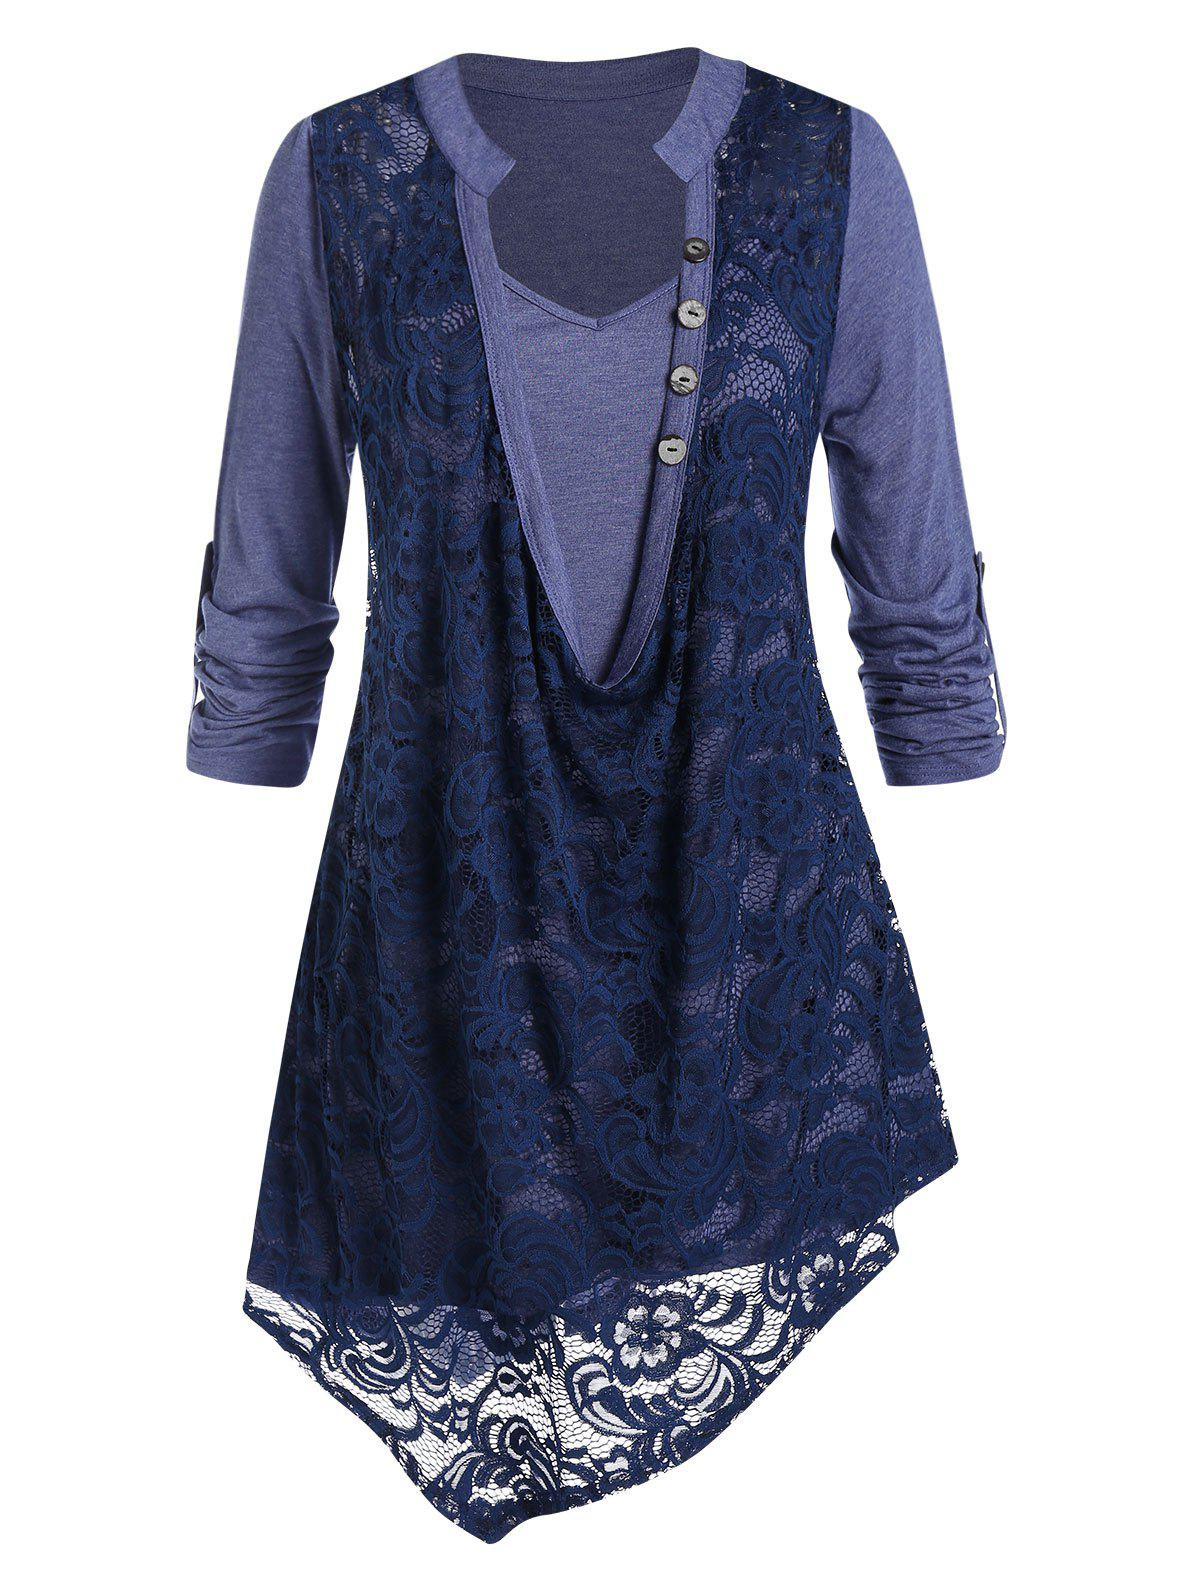 Plus Size 2 In 1 Floral Lace Irregular Blouse - DARK SLATE BLUE 2X